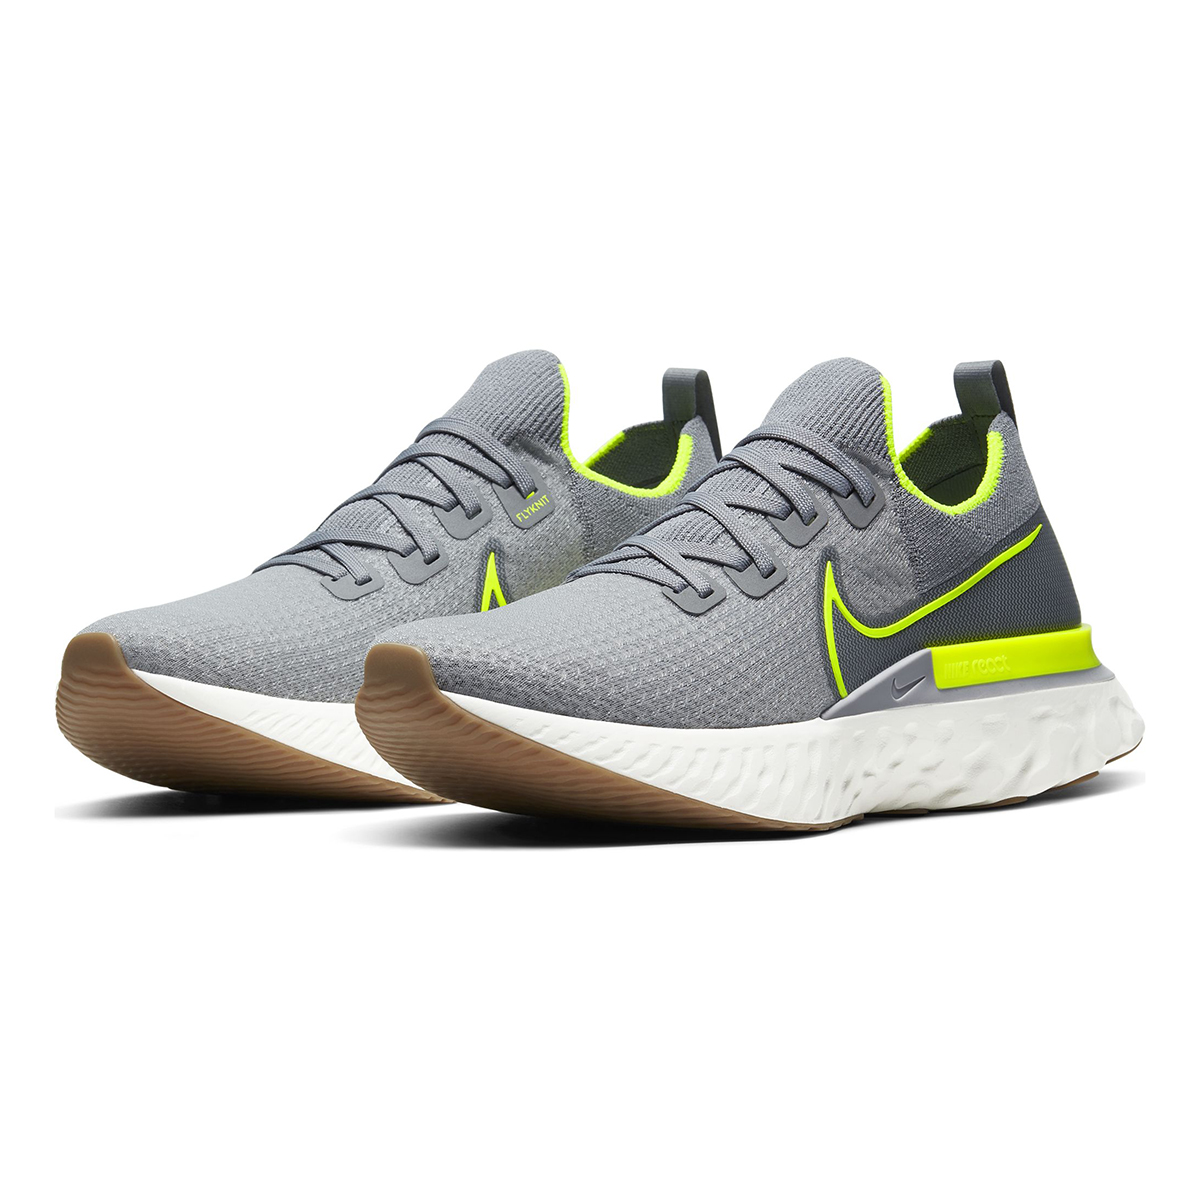 Men's Nike React Infinity Run Flyknit Running Shoe - Color: Particle Grey/Wolf Grey/Sail/Volt (Regular Width) - Size: 6, Particle Grey/Wolf Grey/Sail/Volt, large, image 4